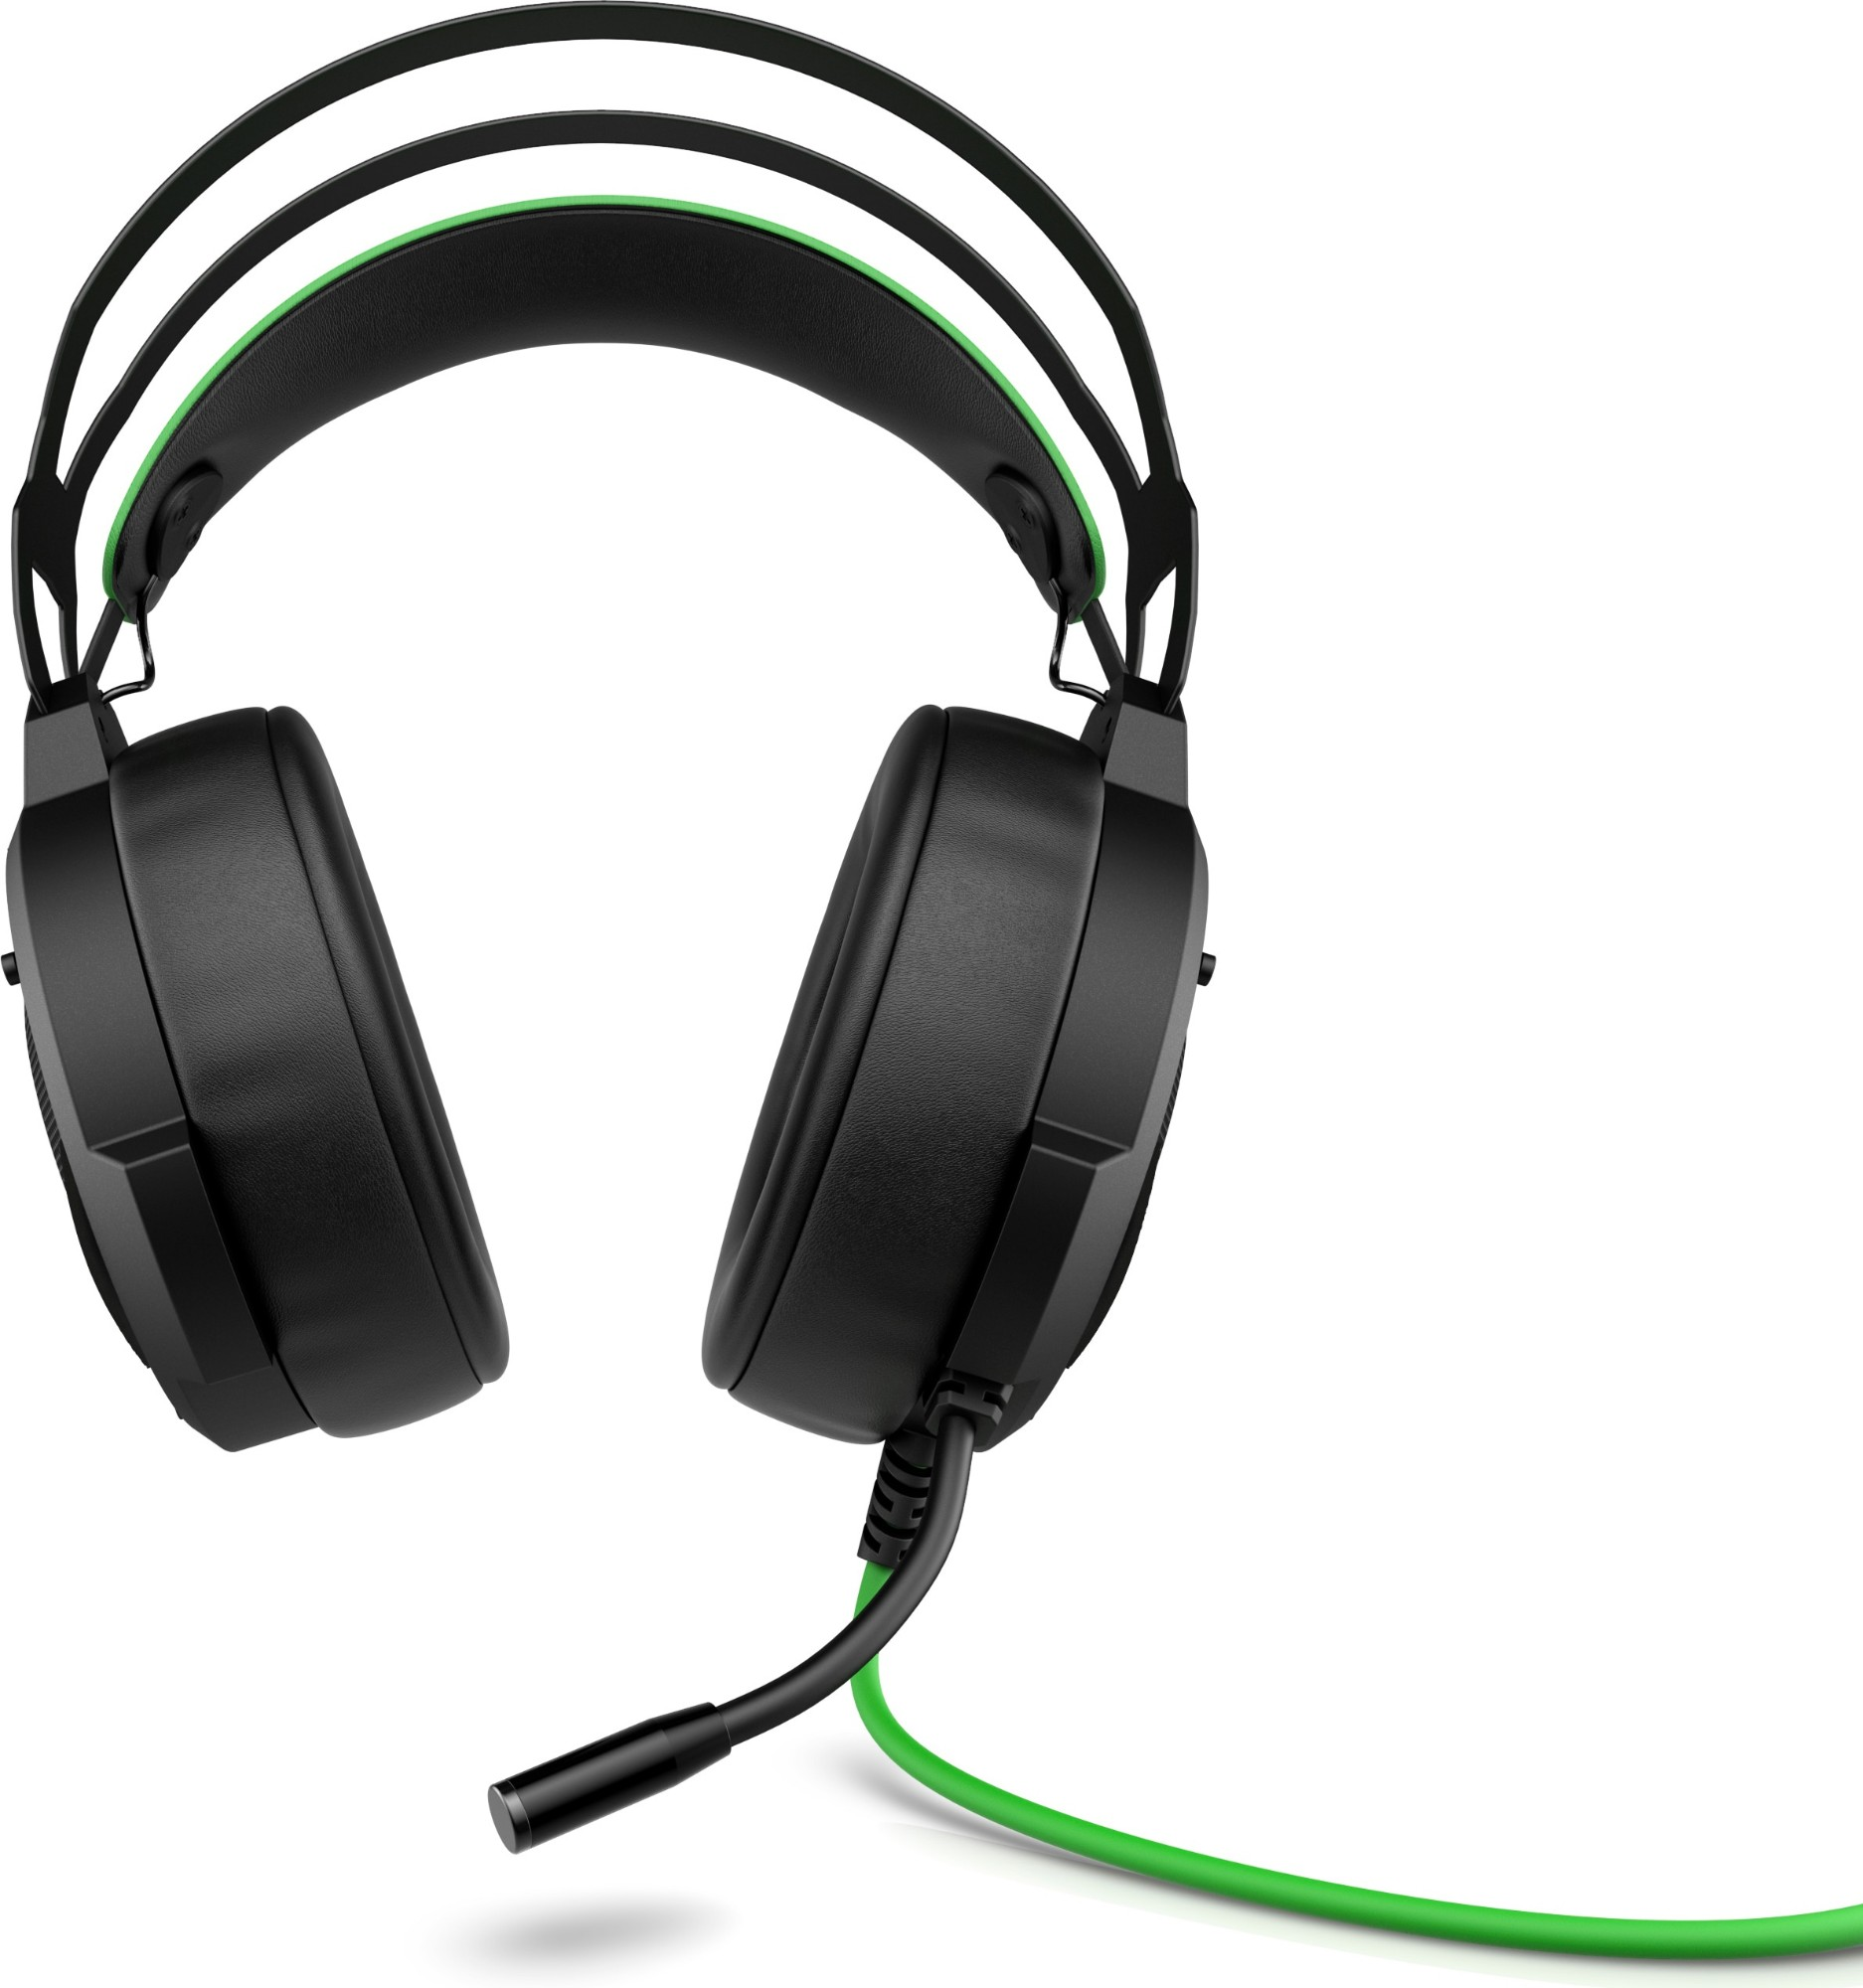 Headset 600 Pavilion Gaming - Stereo - 3.5mm